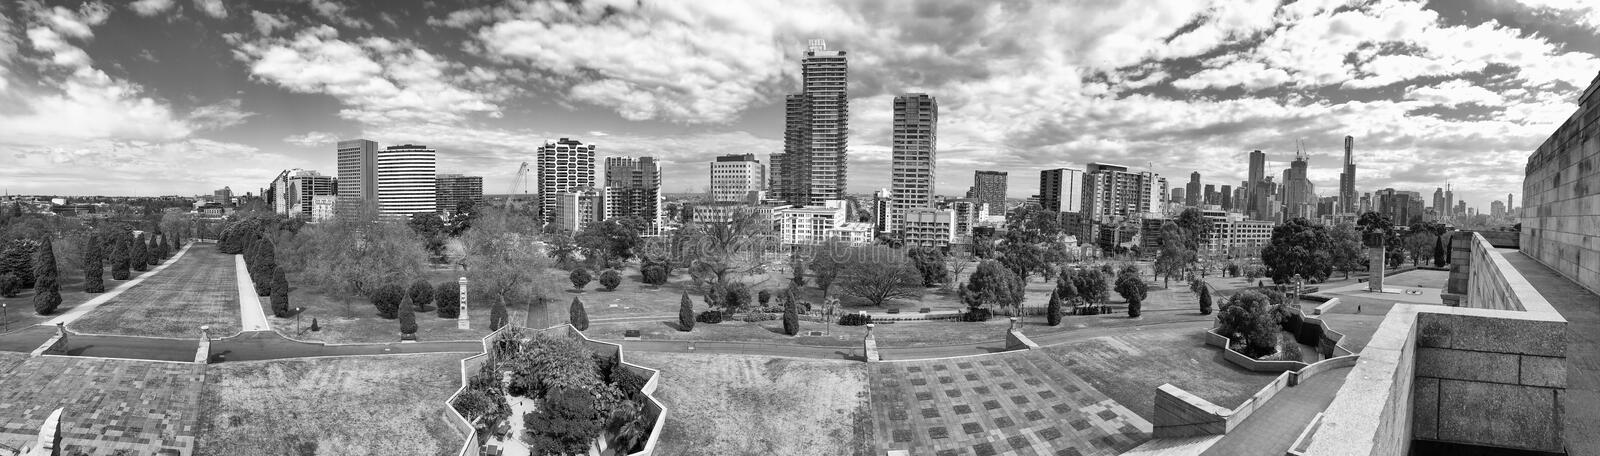 MELBOURNE, AUSTRALIA - SEPTEMBER 6, 2018: City skyline from Shrine of Remembrance Park. Melbourne attracts 15 million tourists. Annually royalty free stock photo